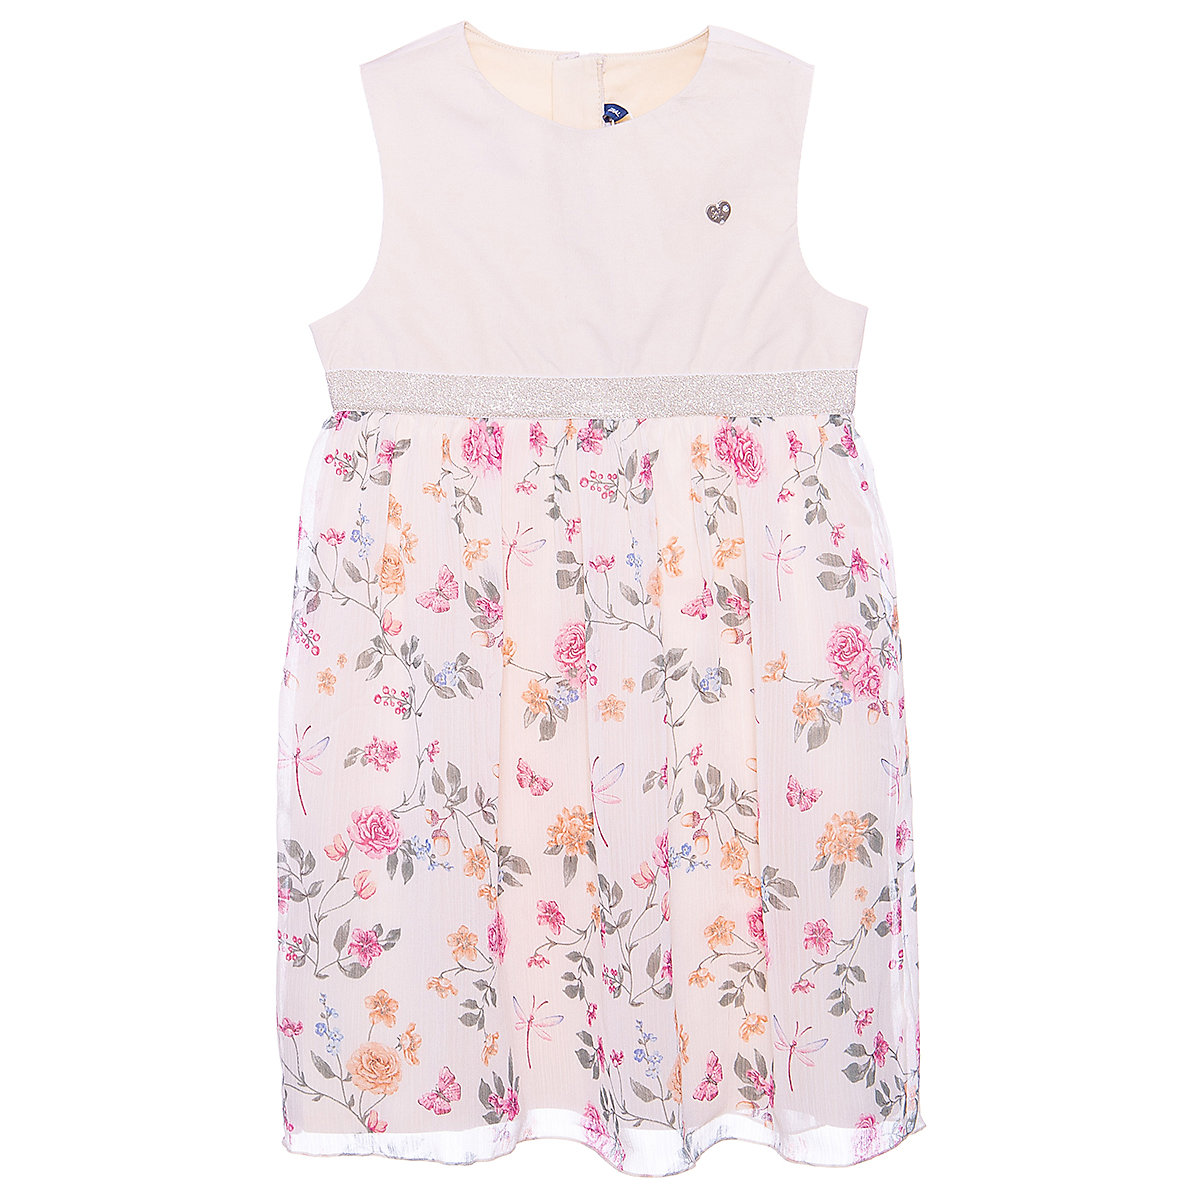 где купить Original Marines Dresses 9500633 dress clothes girls girl for children дешево